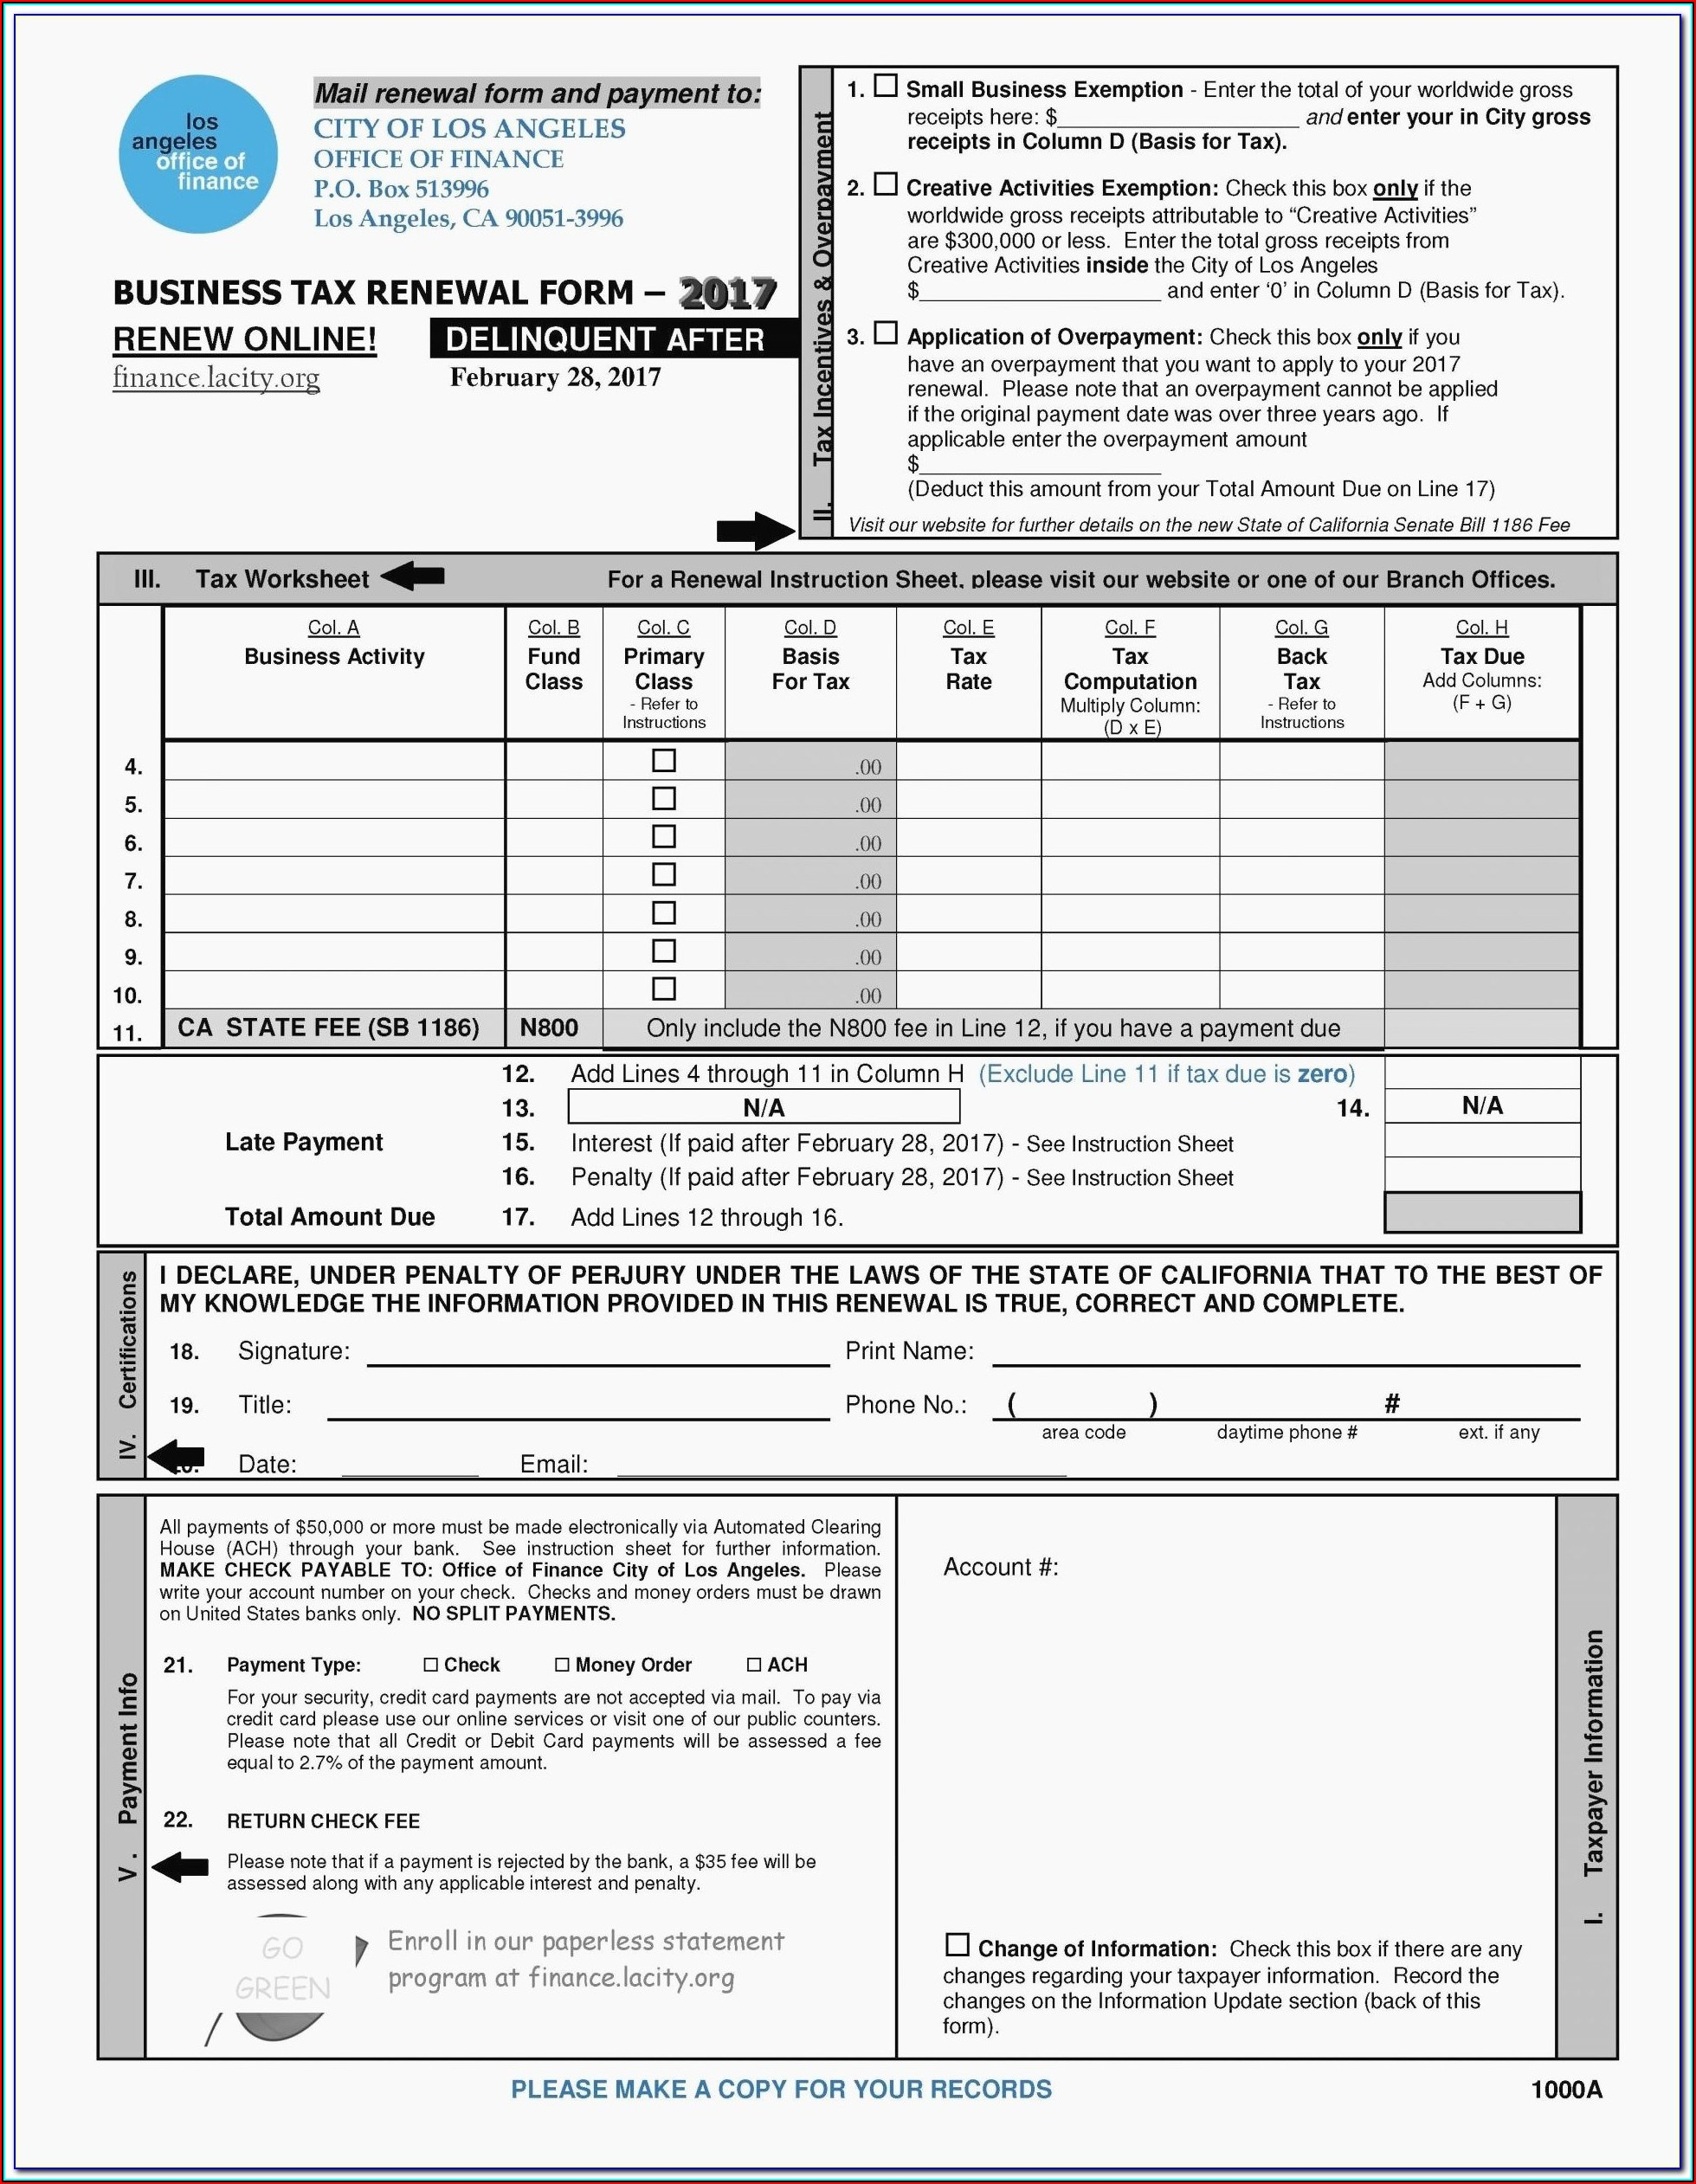 Adams Tax Form Helper Software 2017 Download